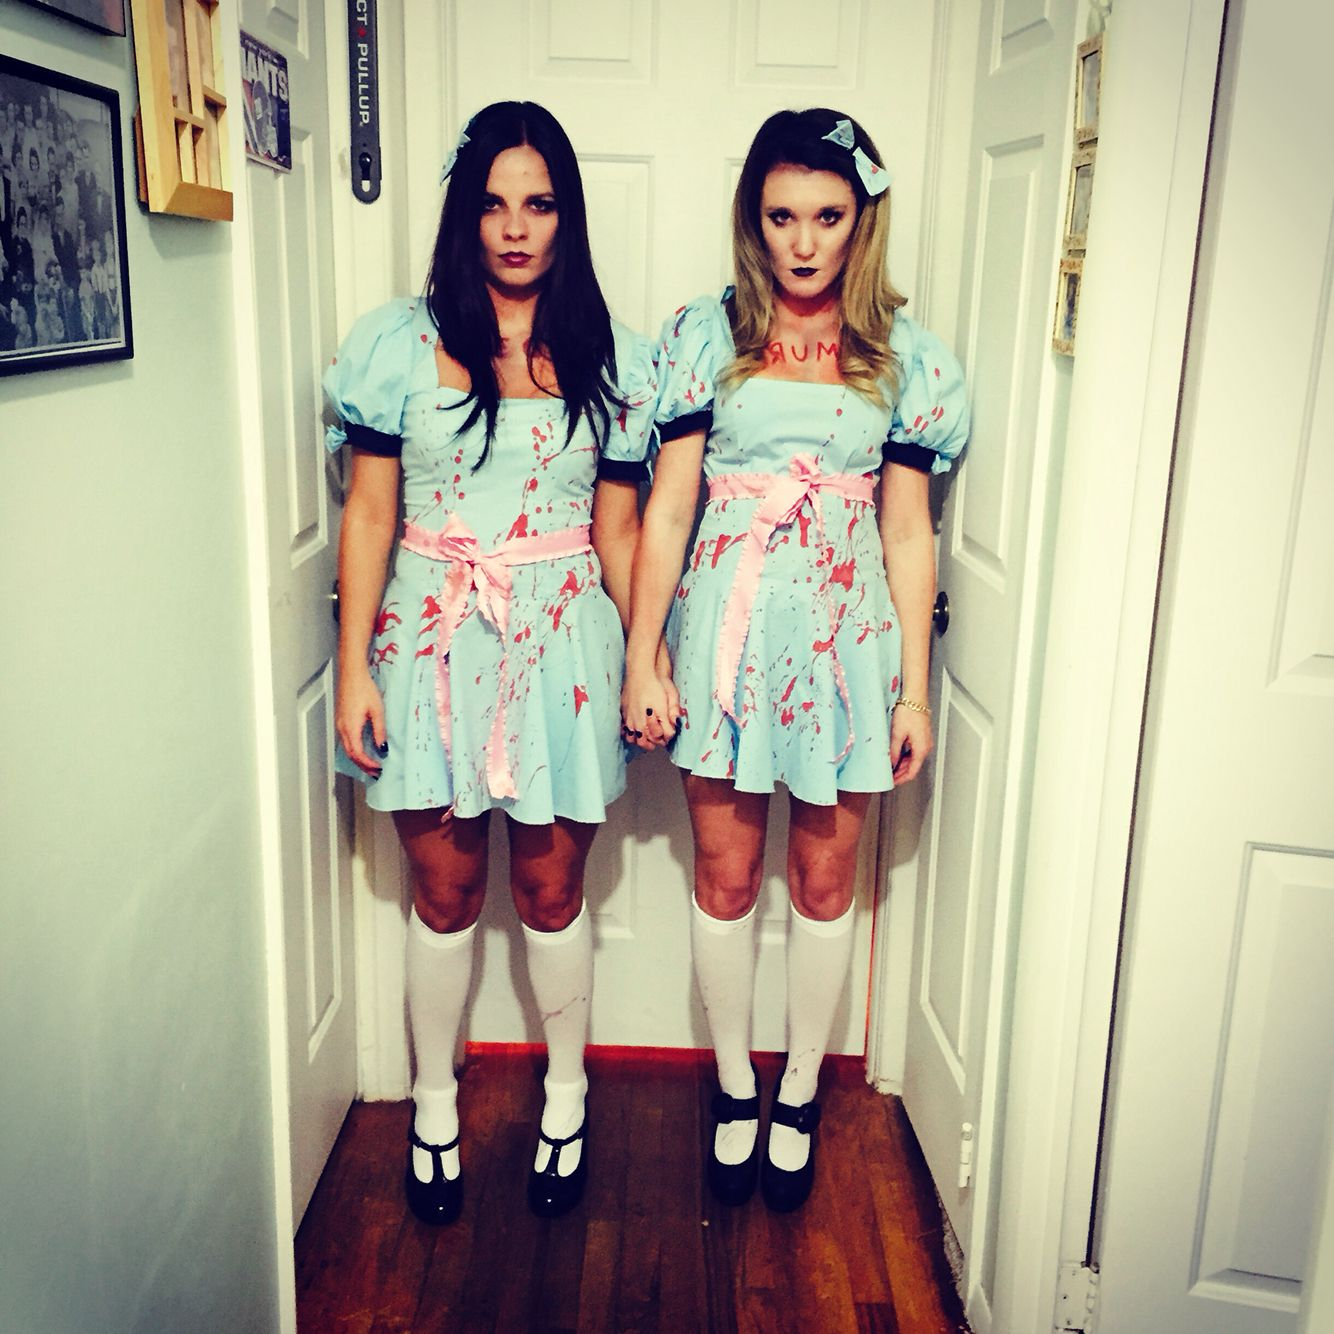 the grady twins from the shining - The Shining Halloween